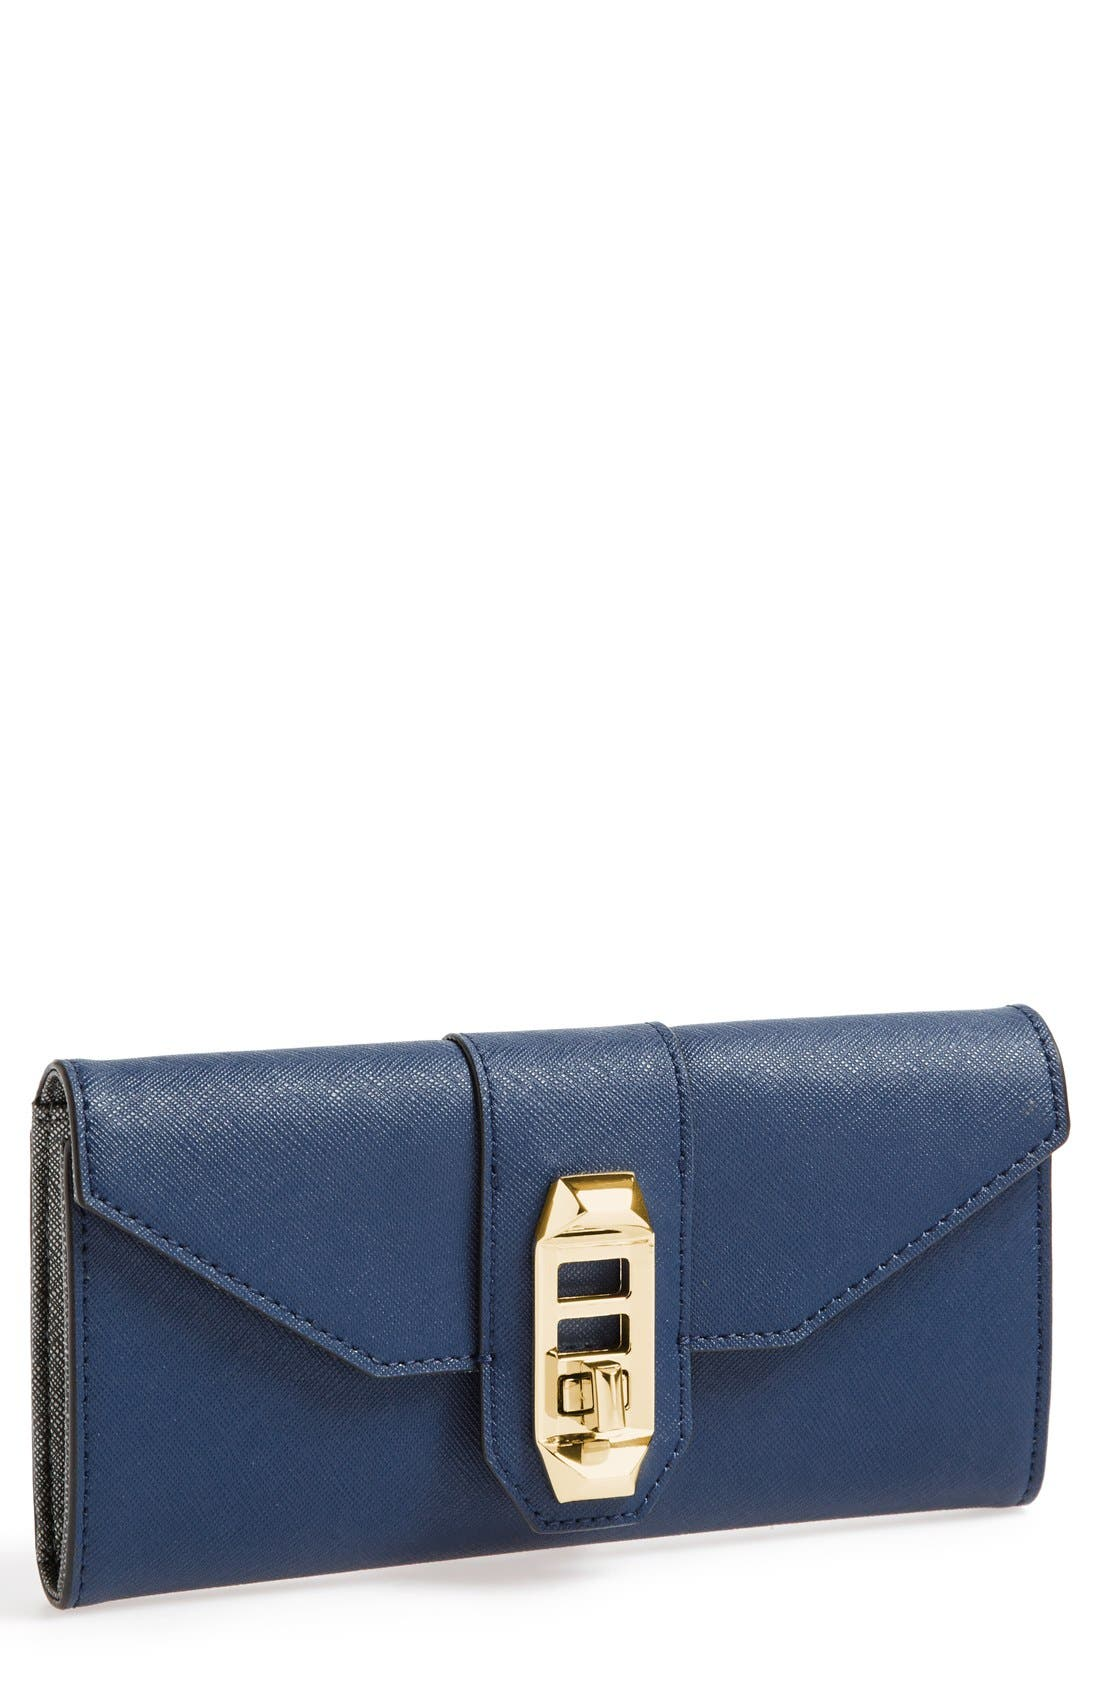 Alternate Image 1 Selected - Rebecca Minkoff 'Mason' Turnlock Wallet